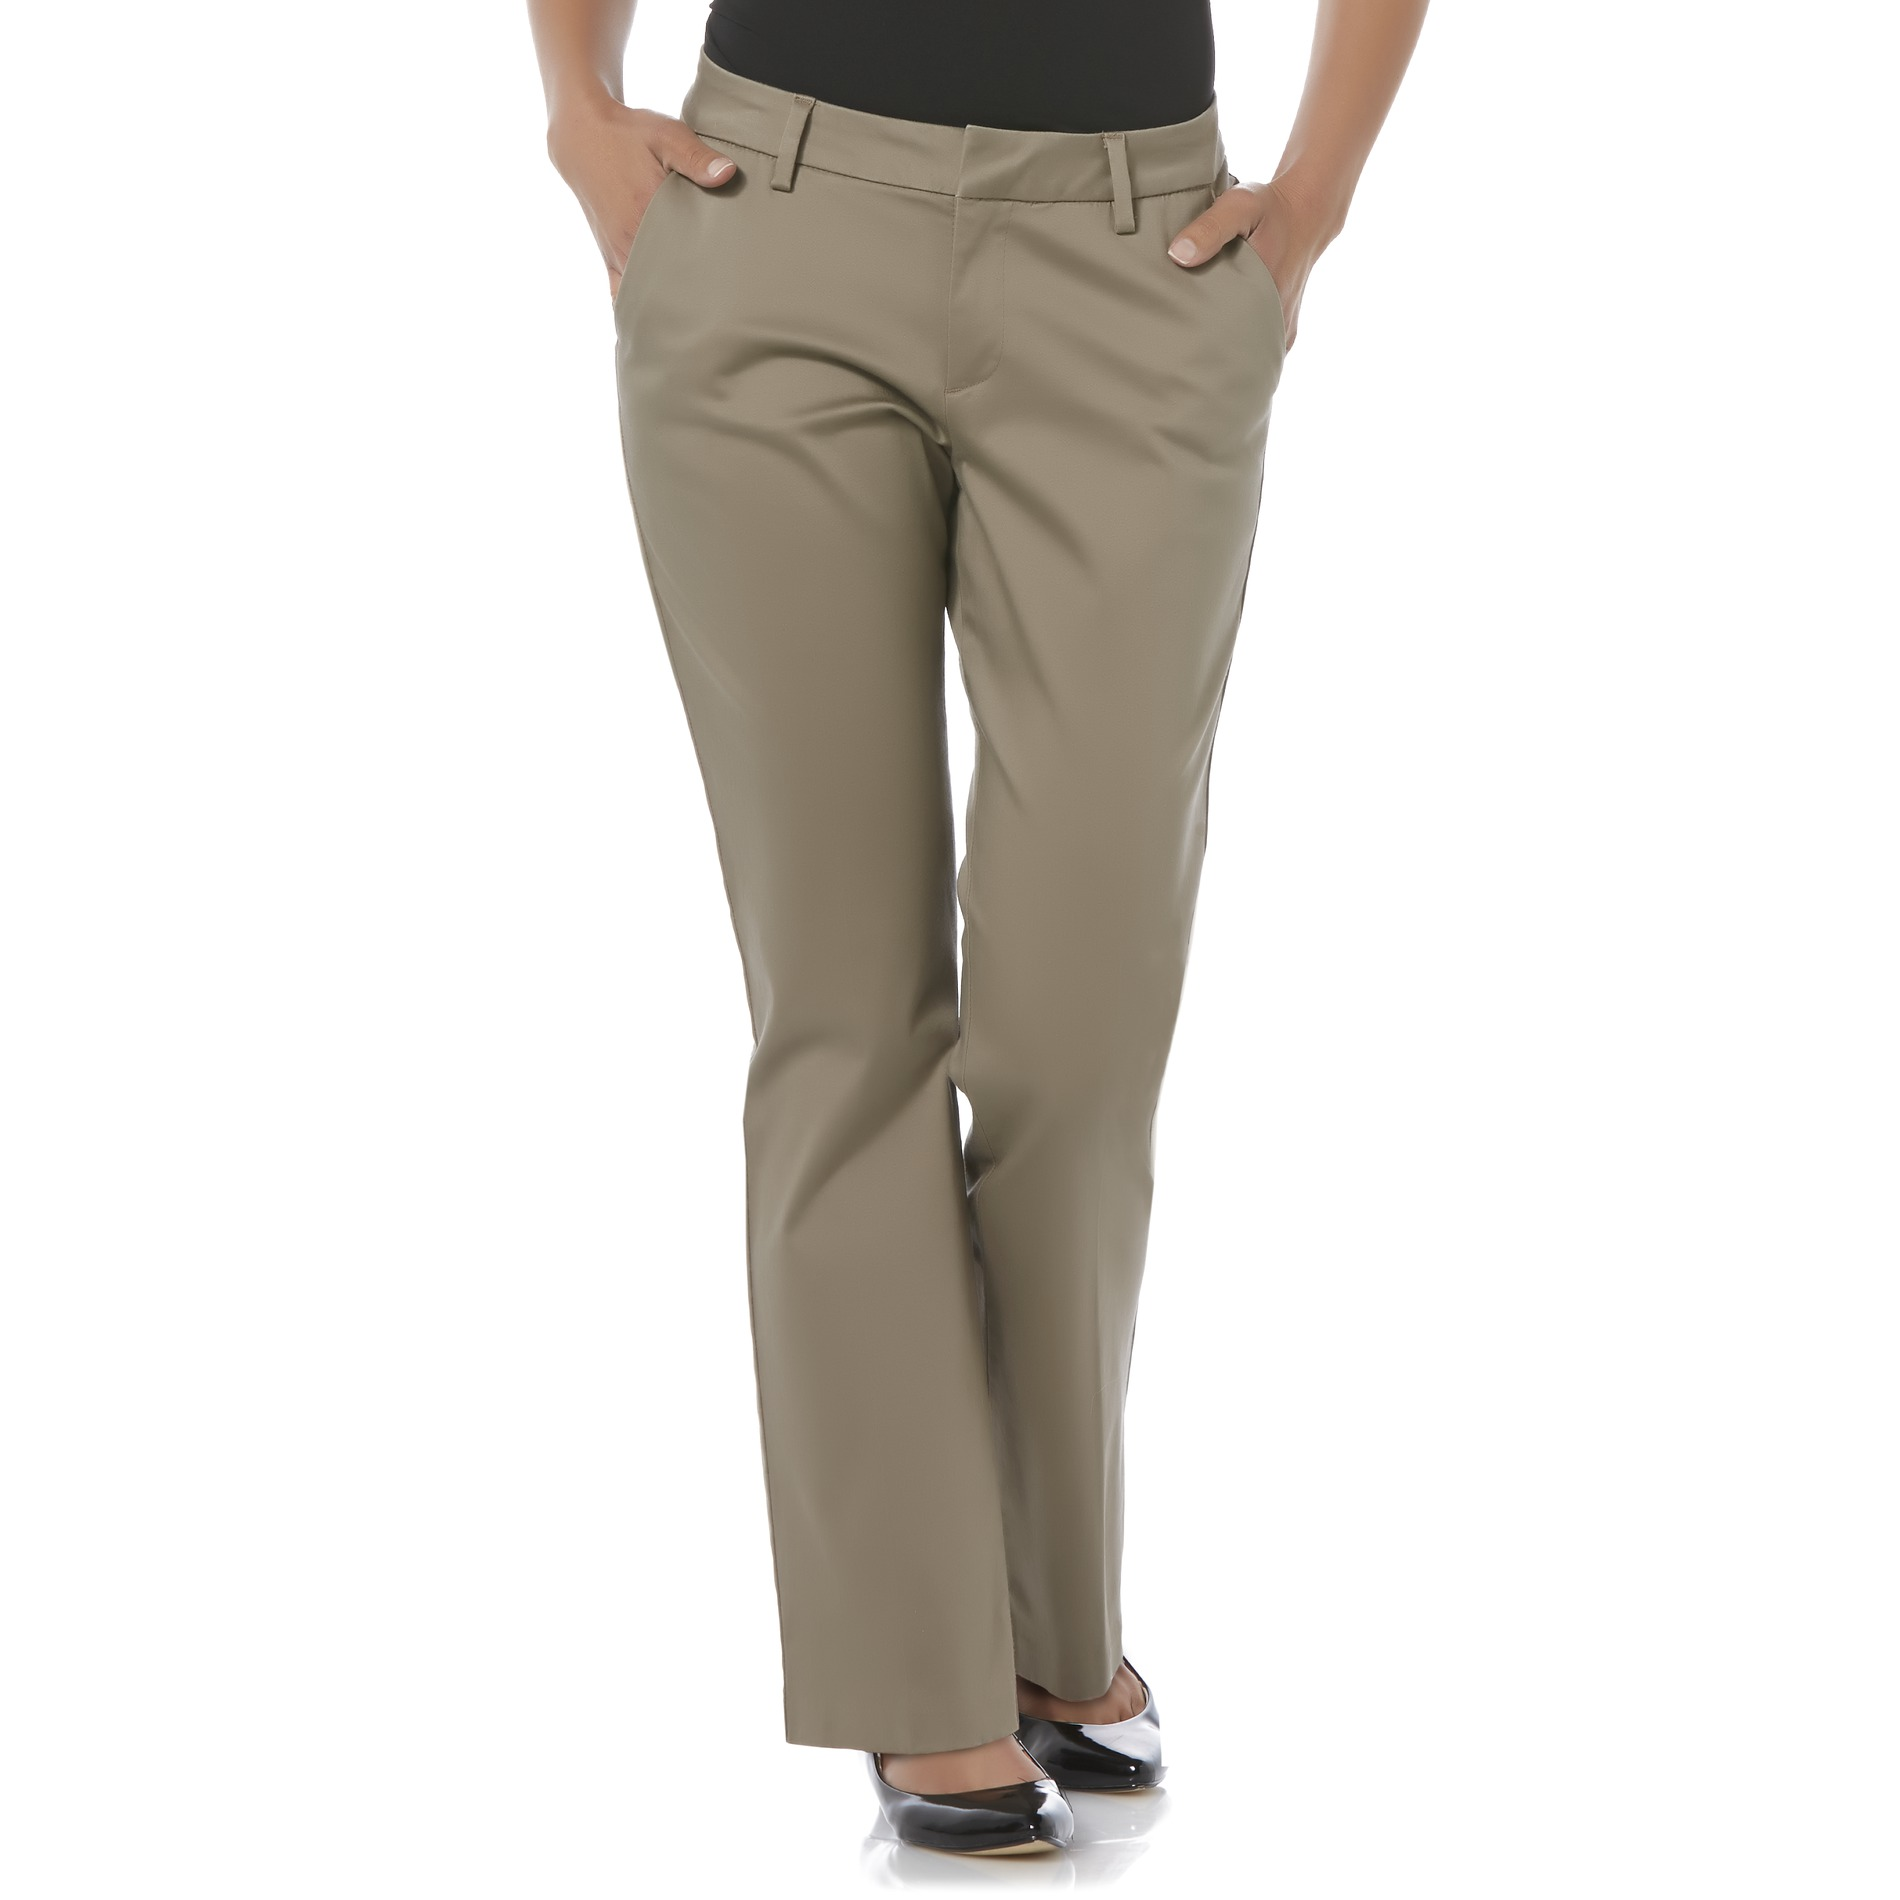 LEE Petites Curvy Fit Twill Pants Clothing Shoes Amp Jewelry Clothing Womens Clothing